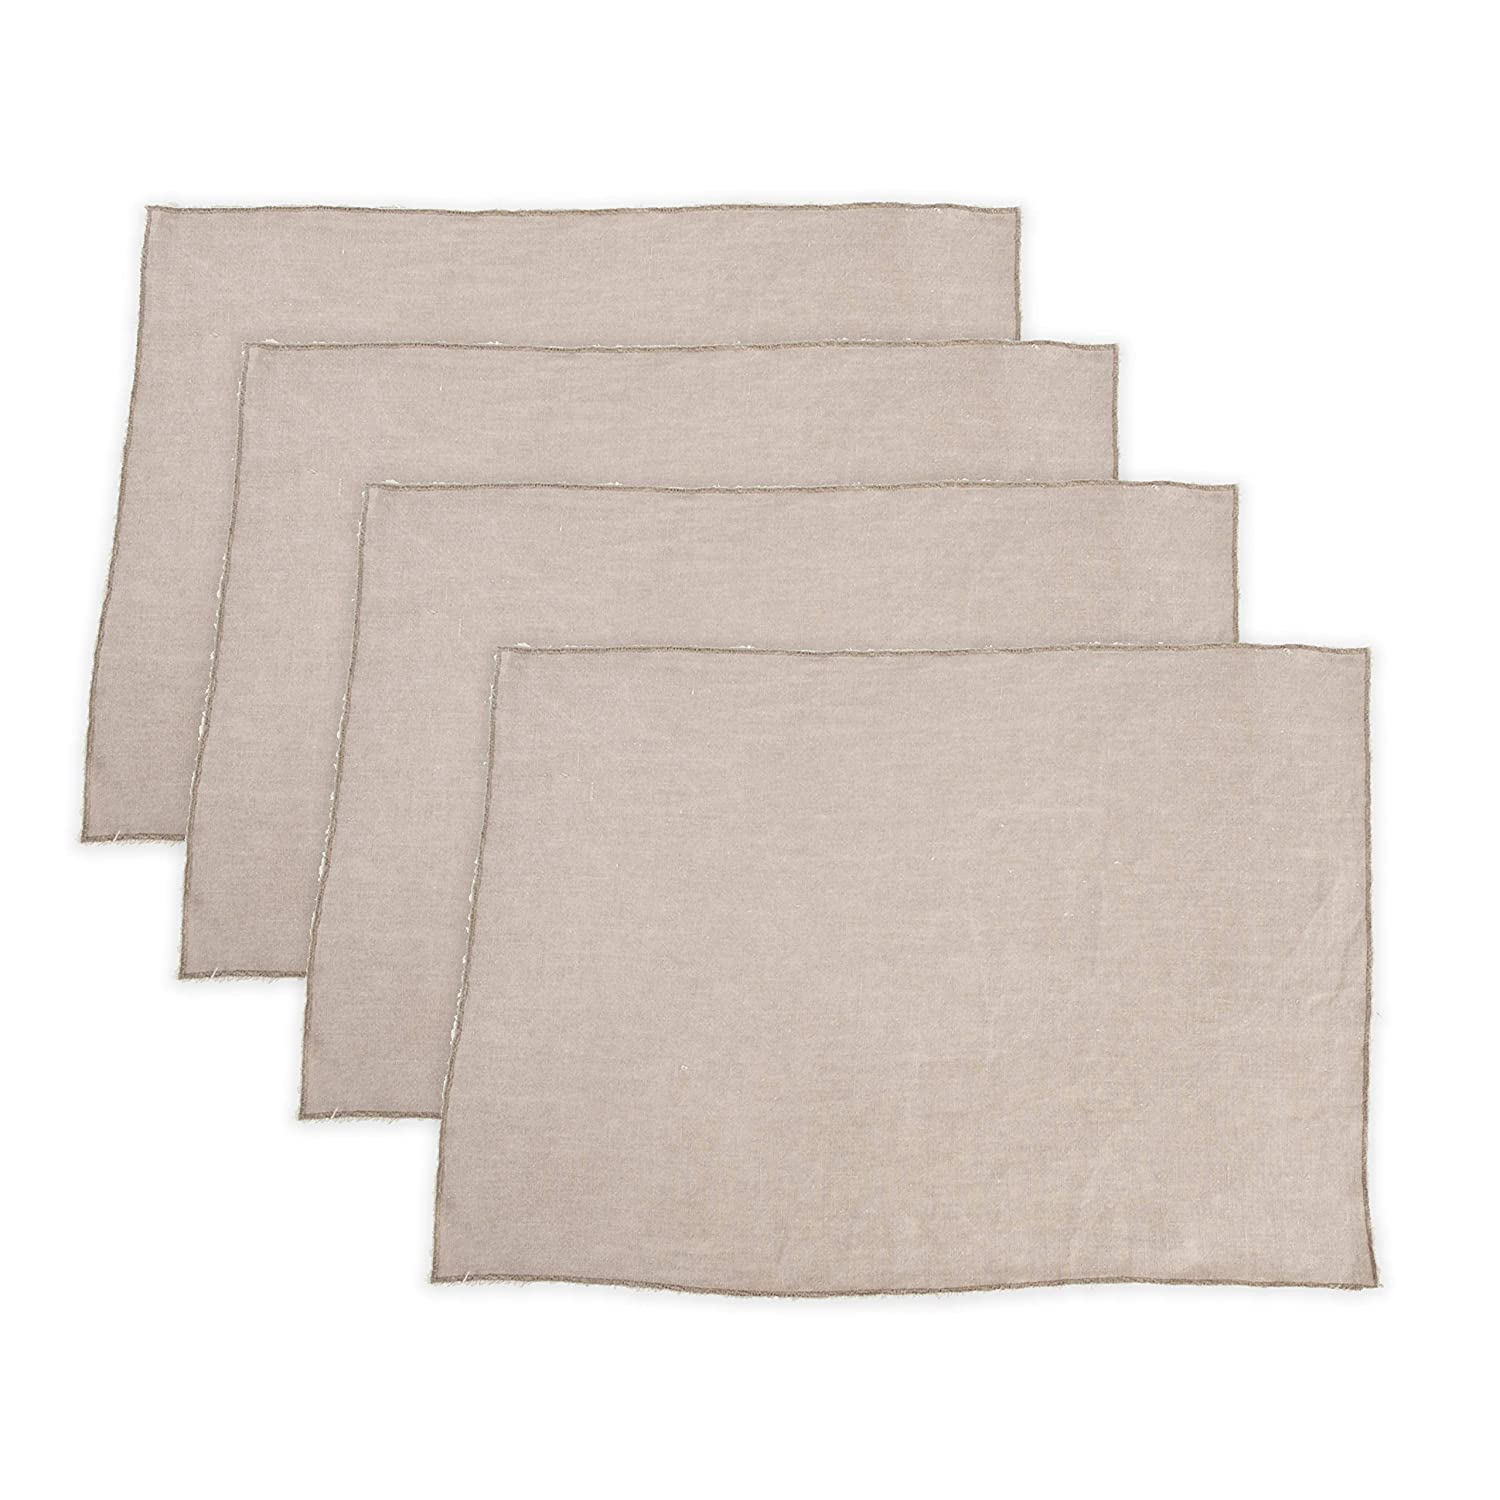 SARO LIFESTYLE 13009.PW1420B Graciella Collection Fringed Design Stone Washed Placemats 14 x 20 Pewter Set of 4